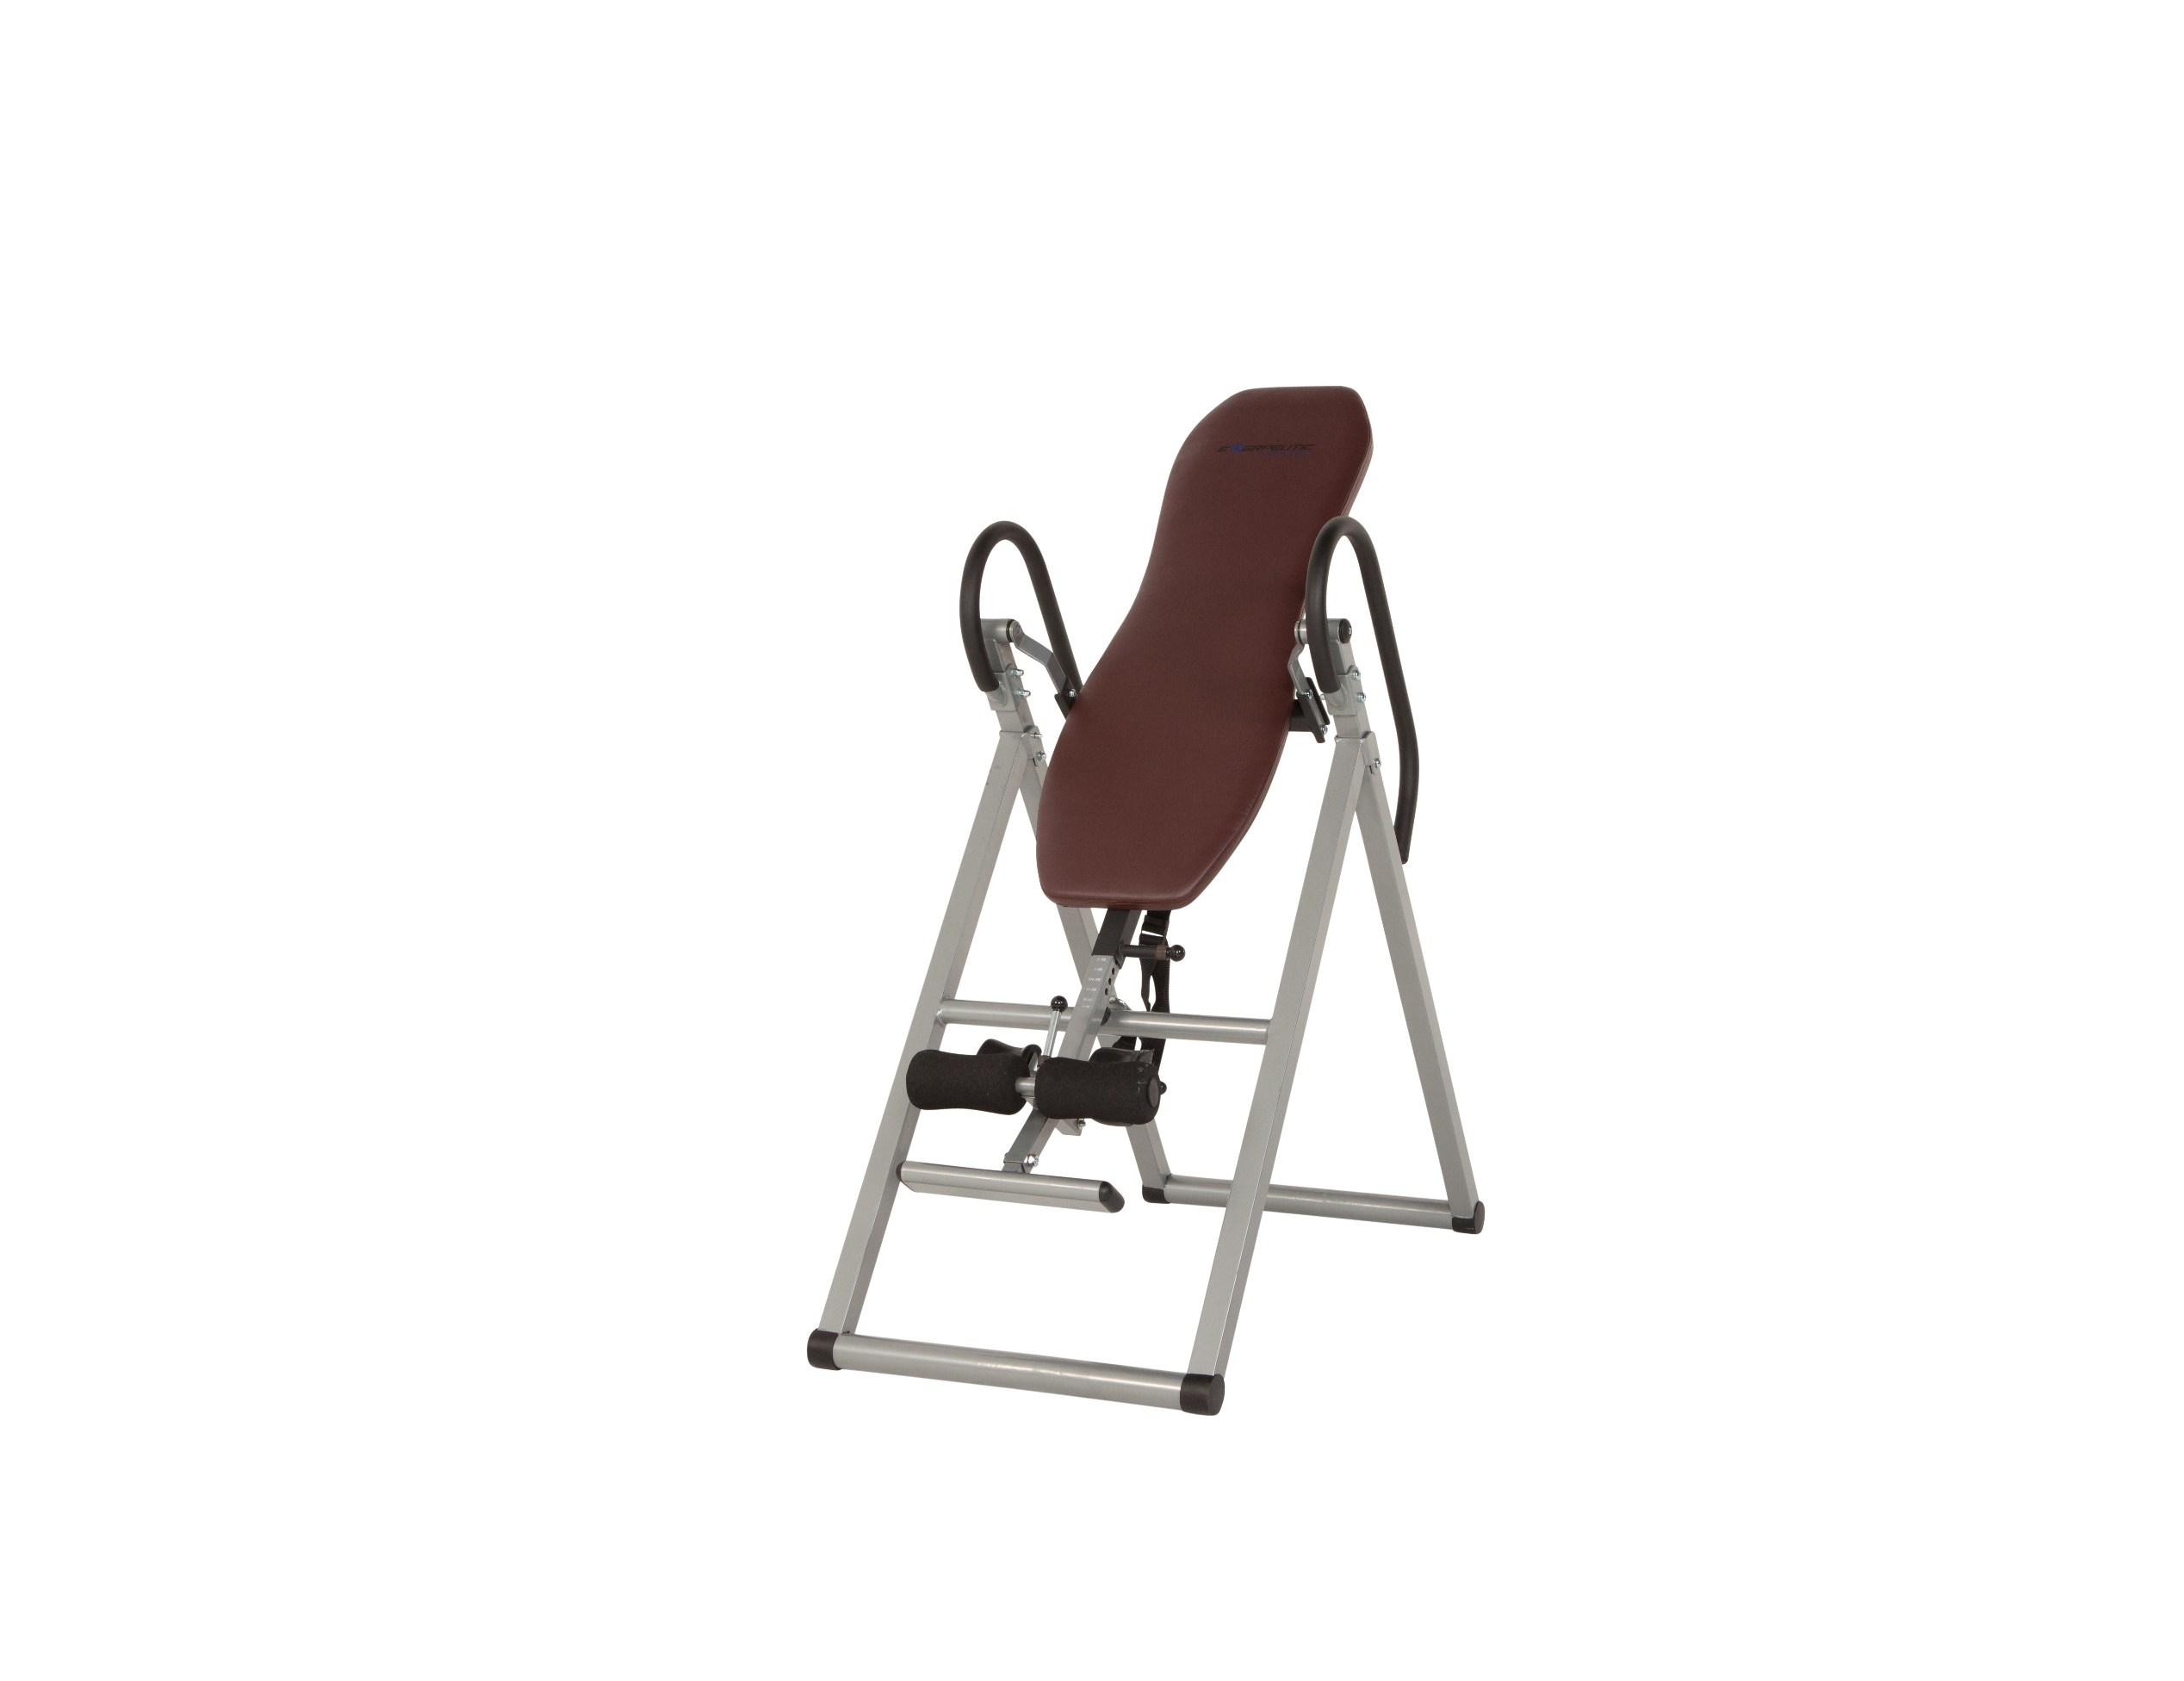 Exerpeutic Inversion Table Exerpeutic Inversion Table